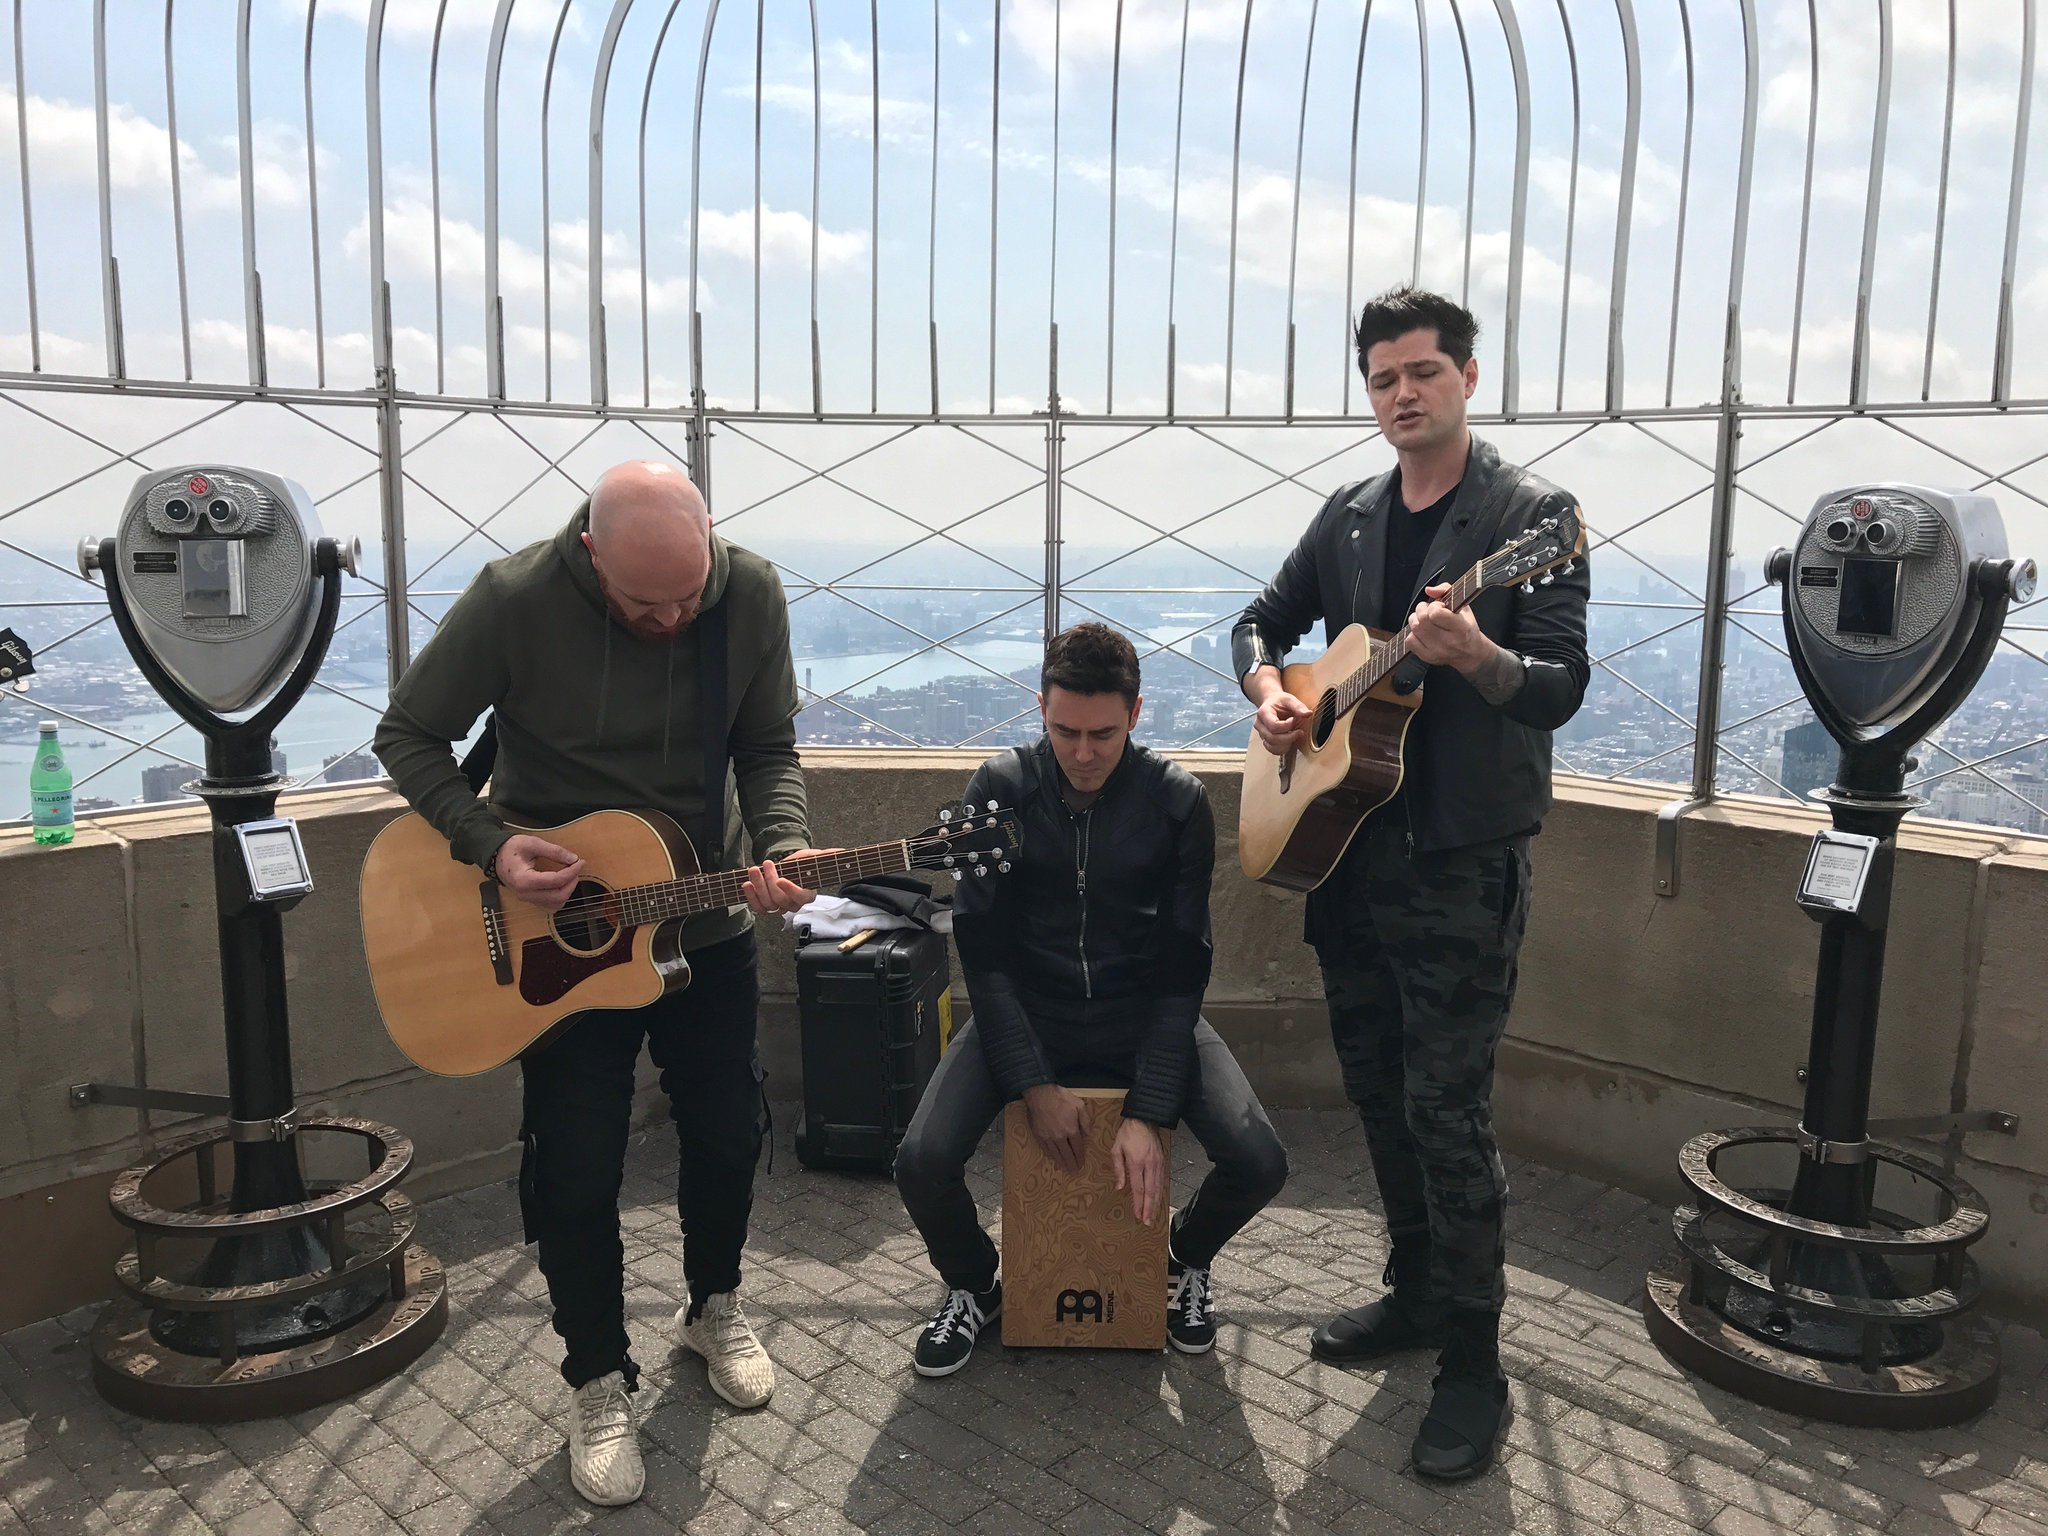 EPIC to play some songs to the whole of NYC on top of the @EmpireStateBldg today... ���� https://t.co/guGsV6cqVl